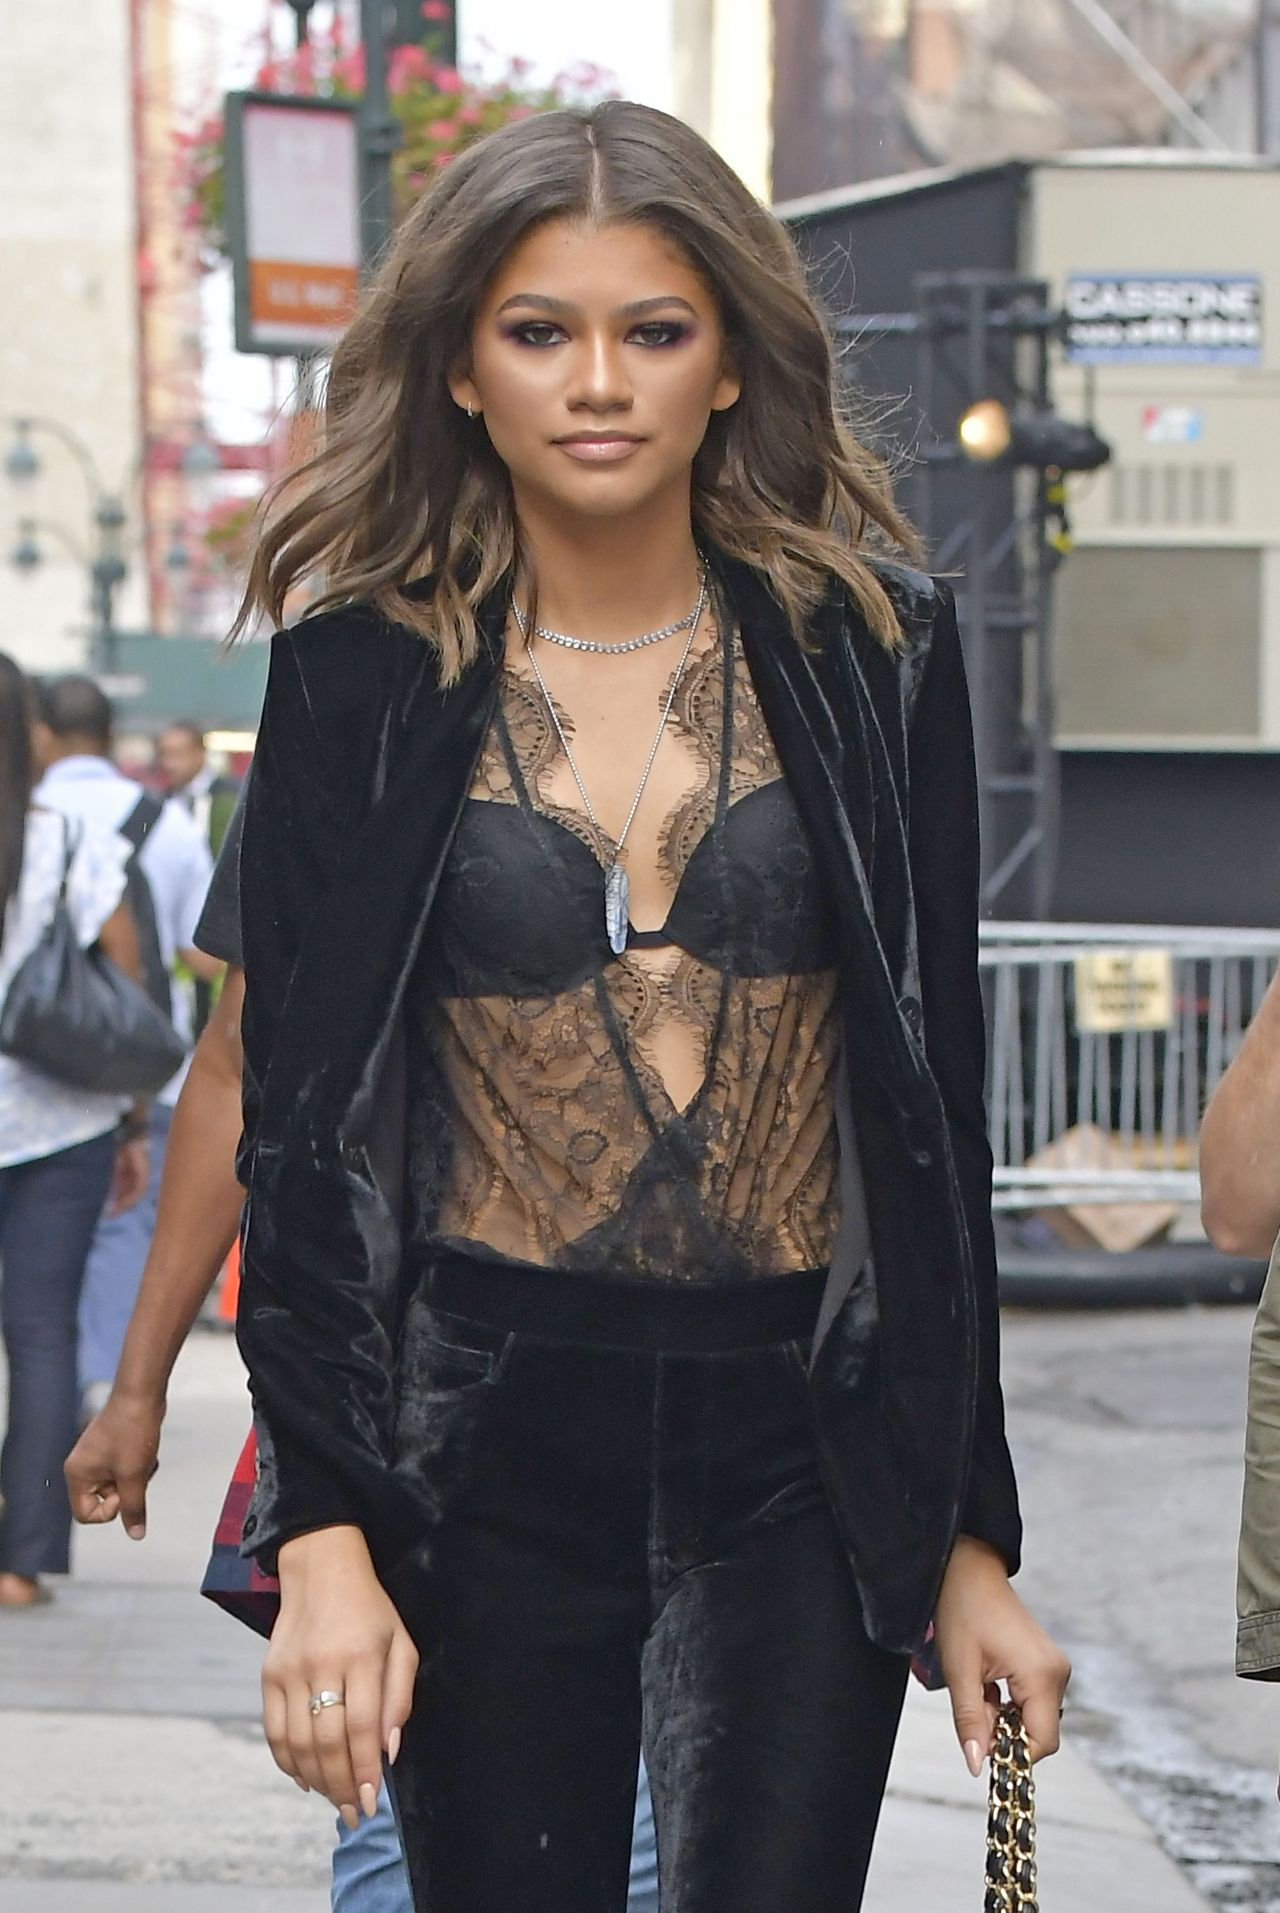 Zendaya Coleman Style Out In Nyc 9 9 2016